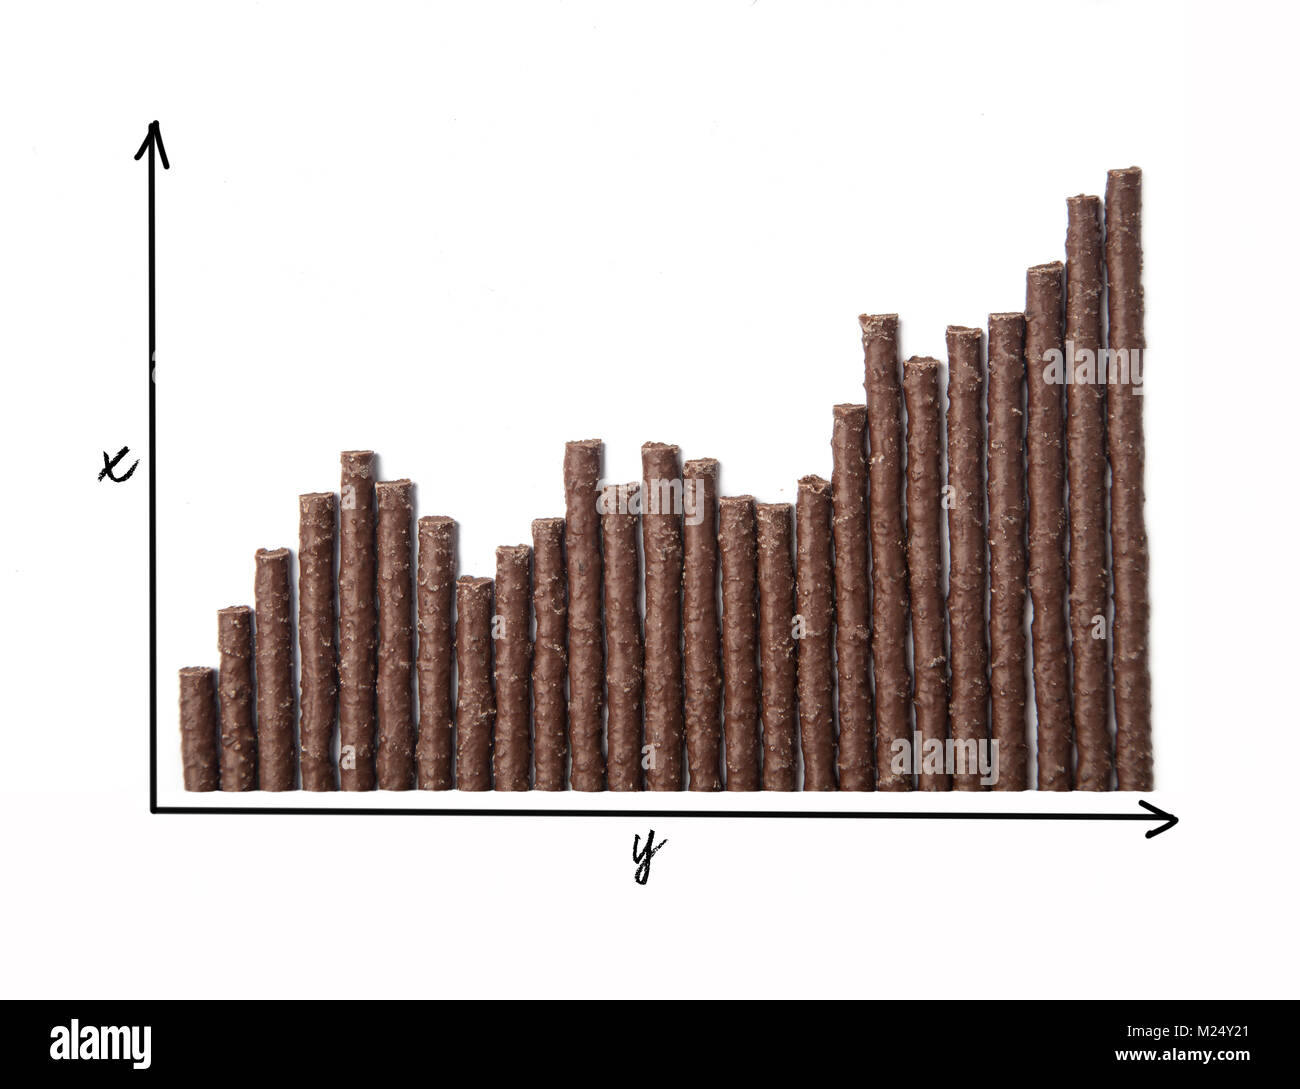 Chocolate Flavoured Stick Candy arranged as graph with axis - Stock Image